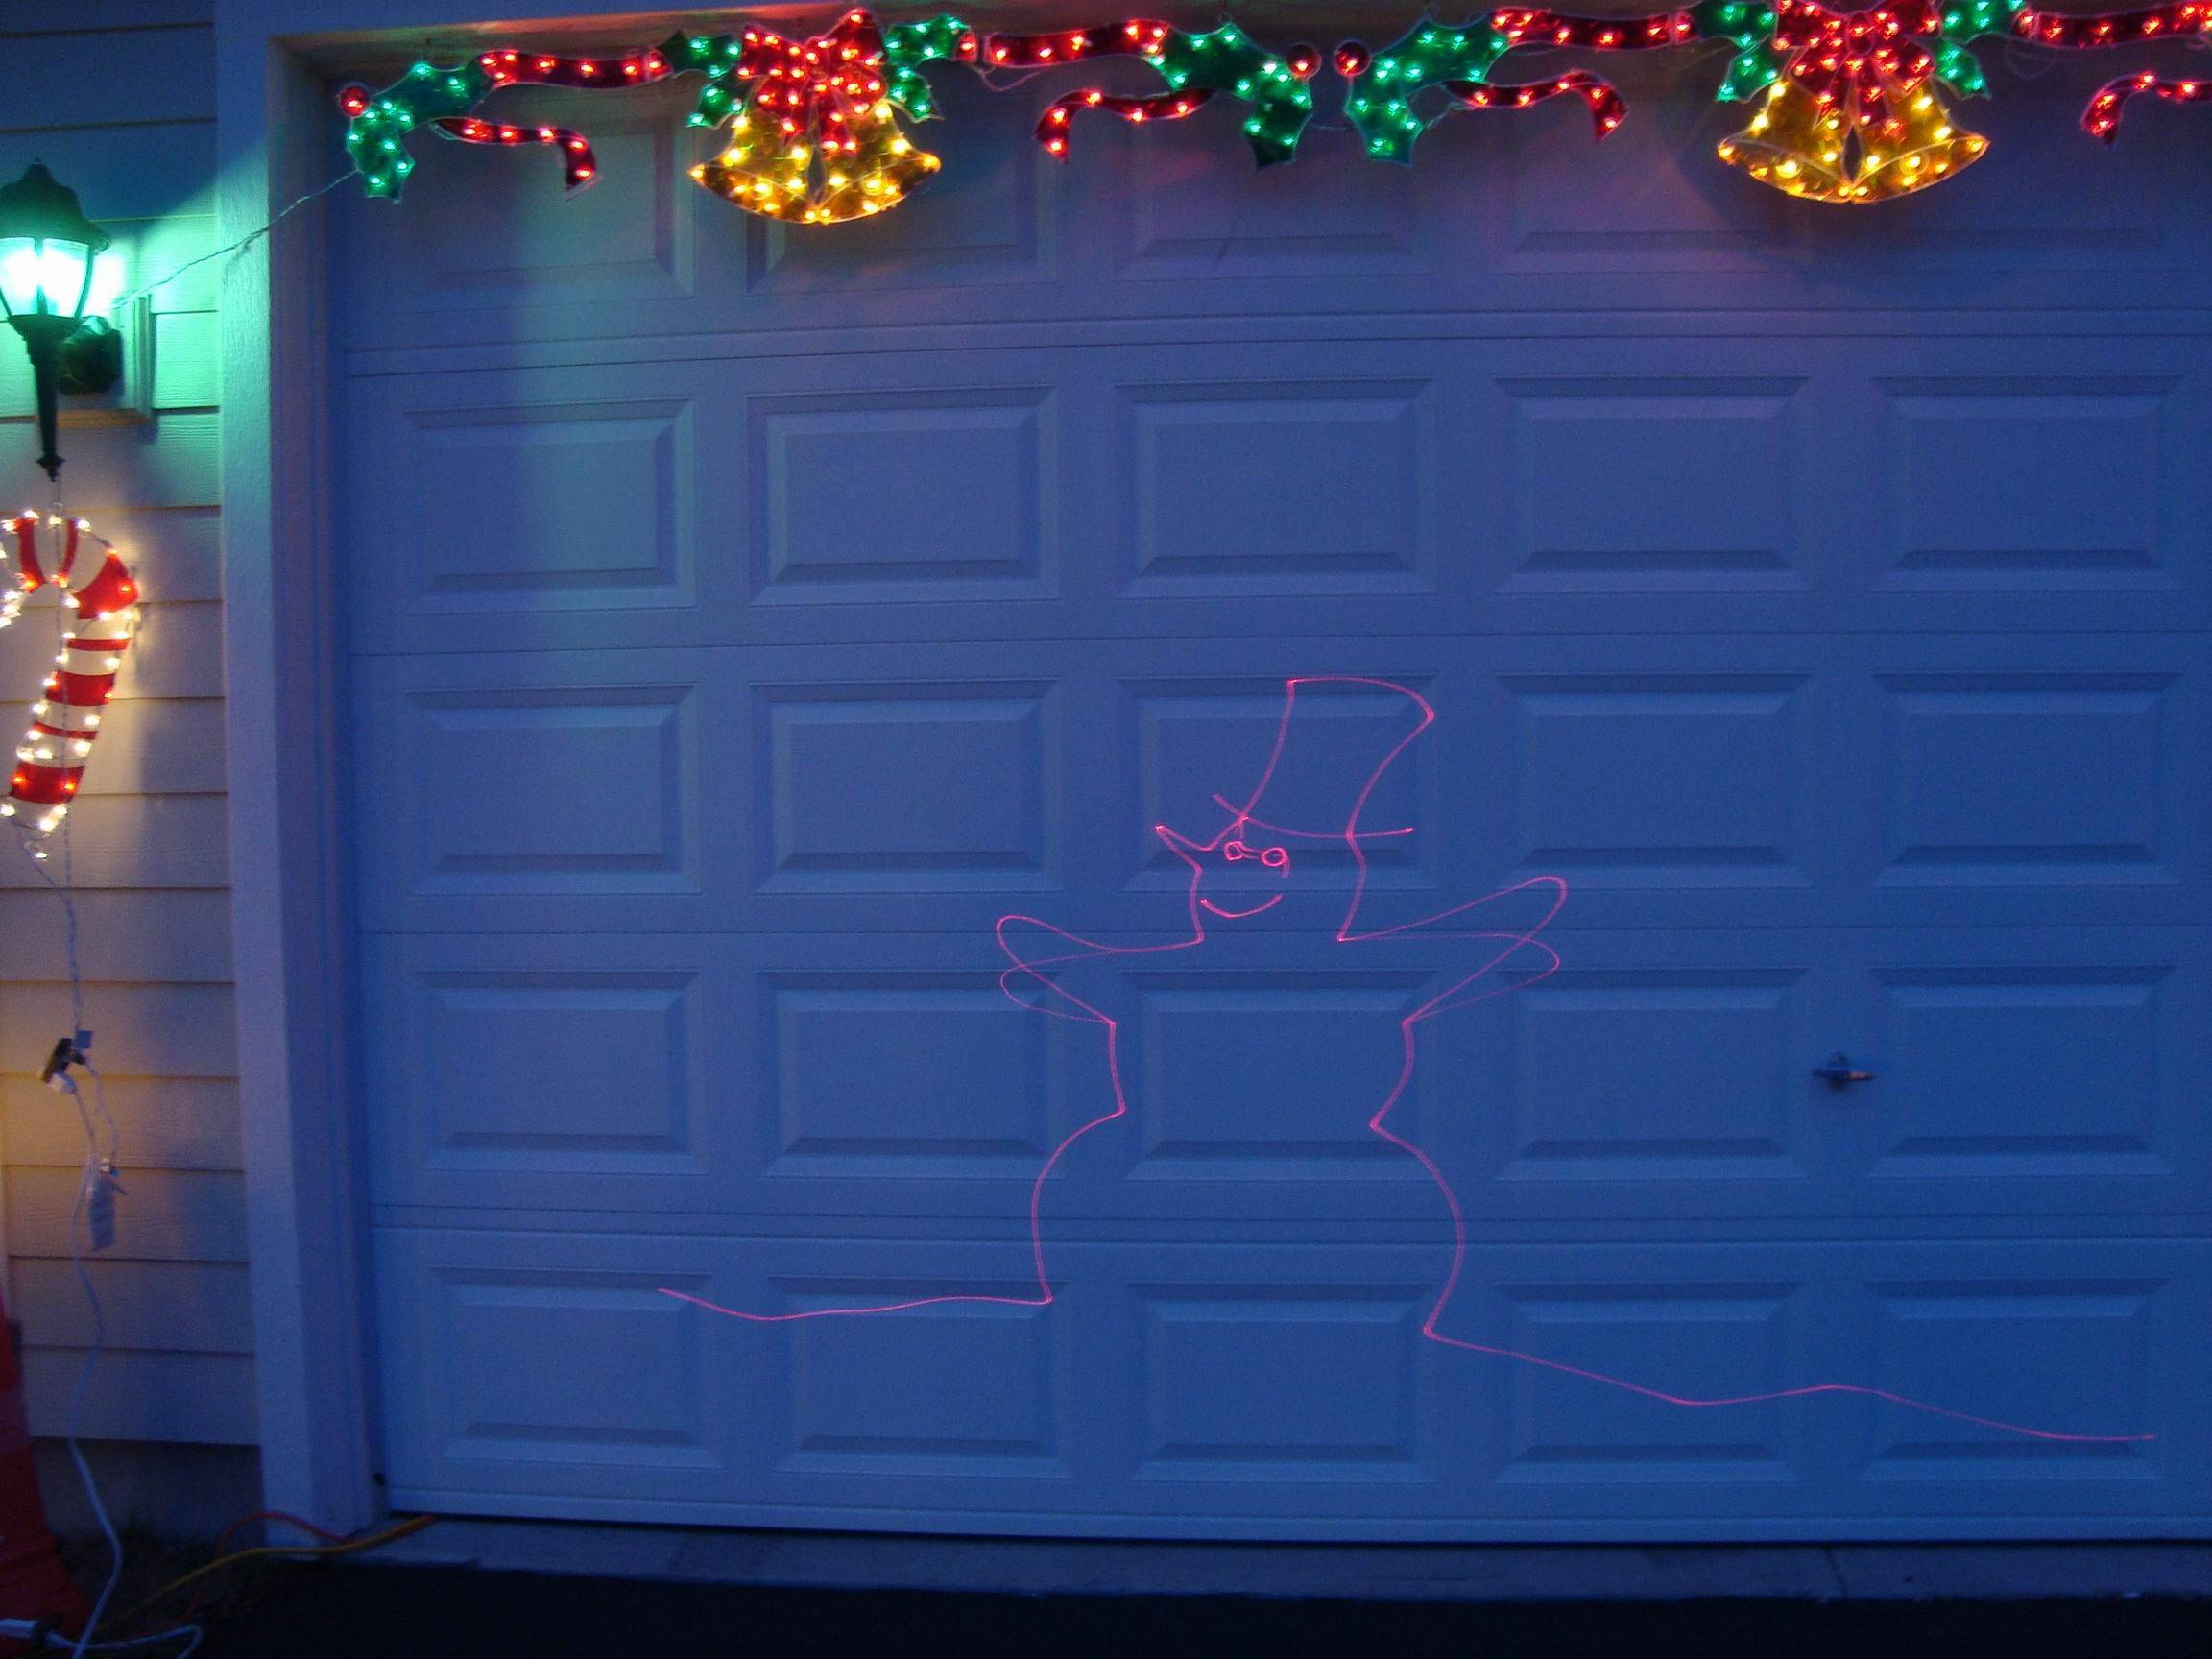 The Hurley display at 582 Wexford Drive in Elgin also features a 20-minute laser light show on the garage door.